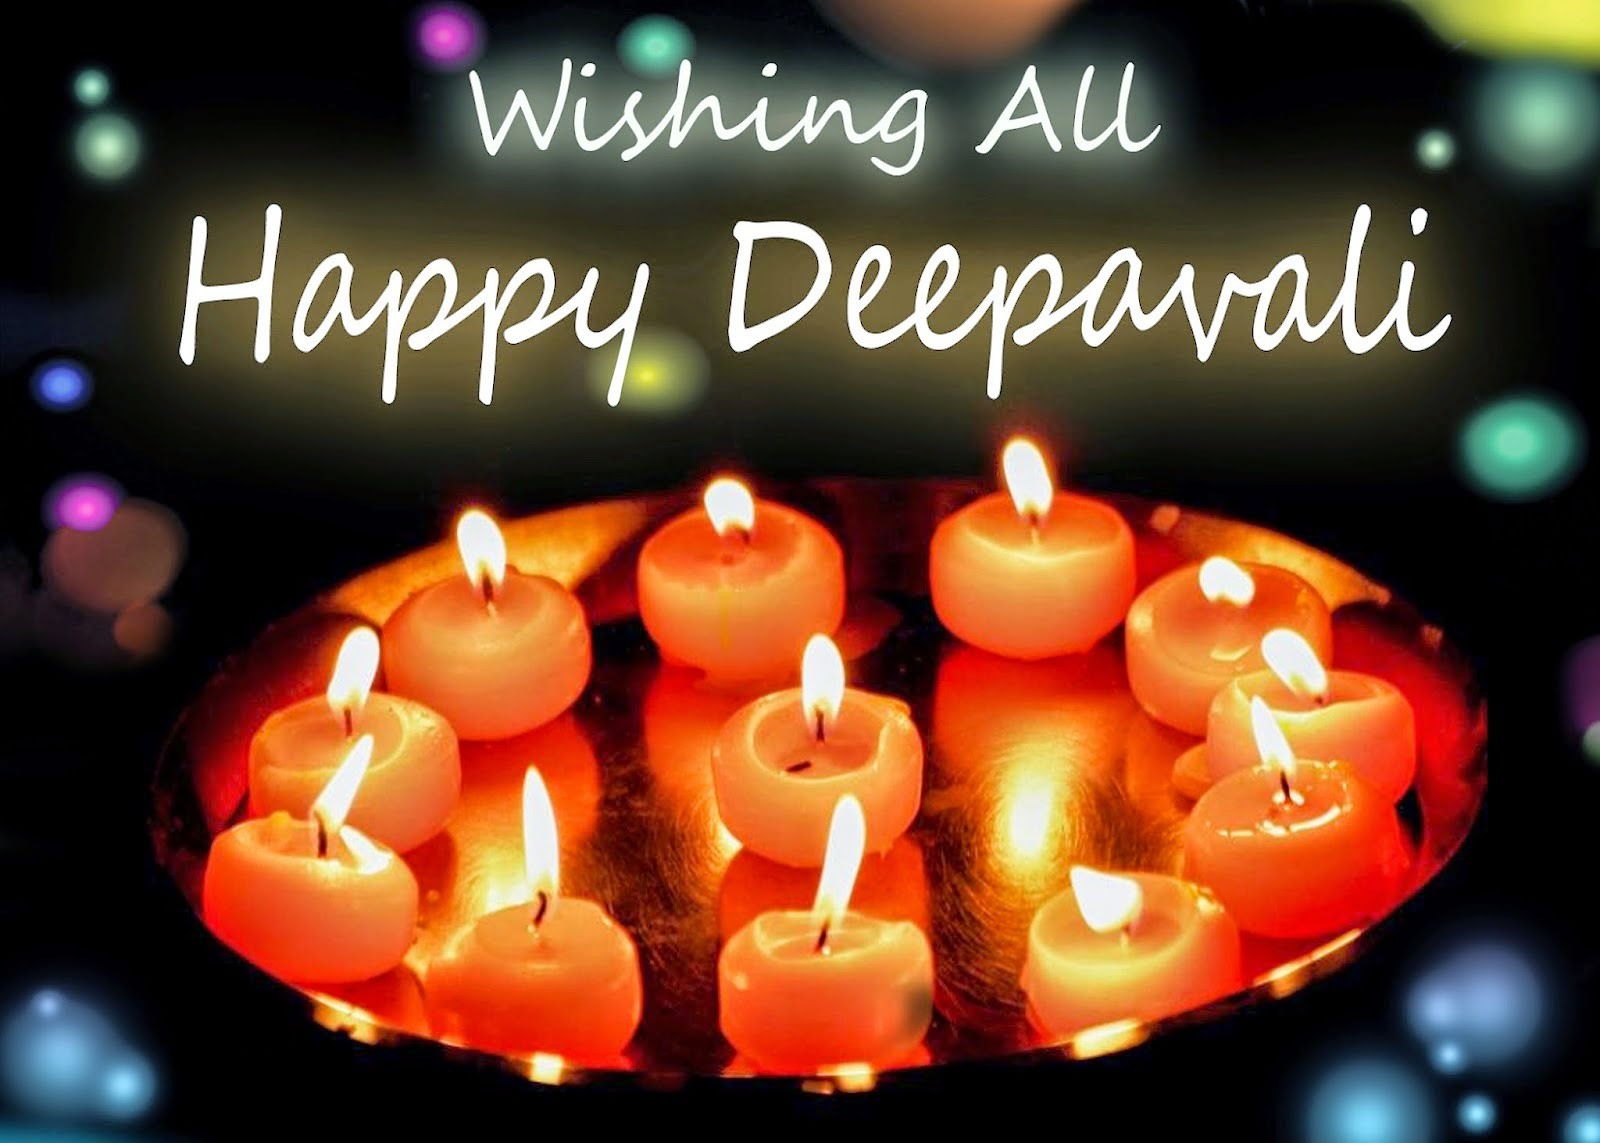 2017 happy deepavali photos free download diwali 2018 wallpapers 2017 happy deepavali photos free download diwali 2018 wallpapers quotes status dp tips wishes kristyandbryce Images